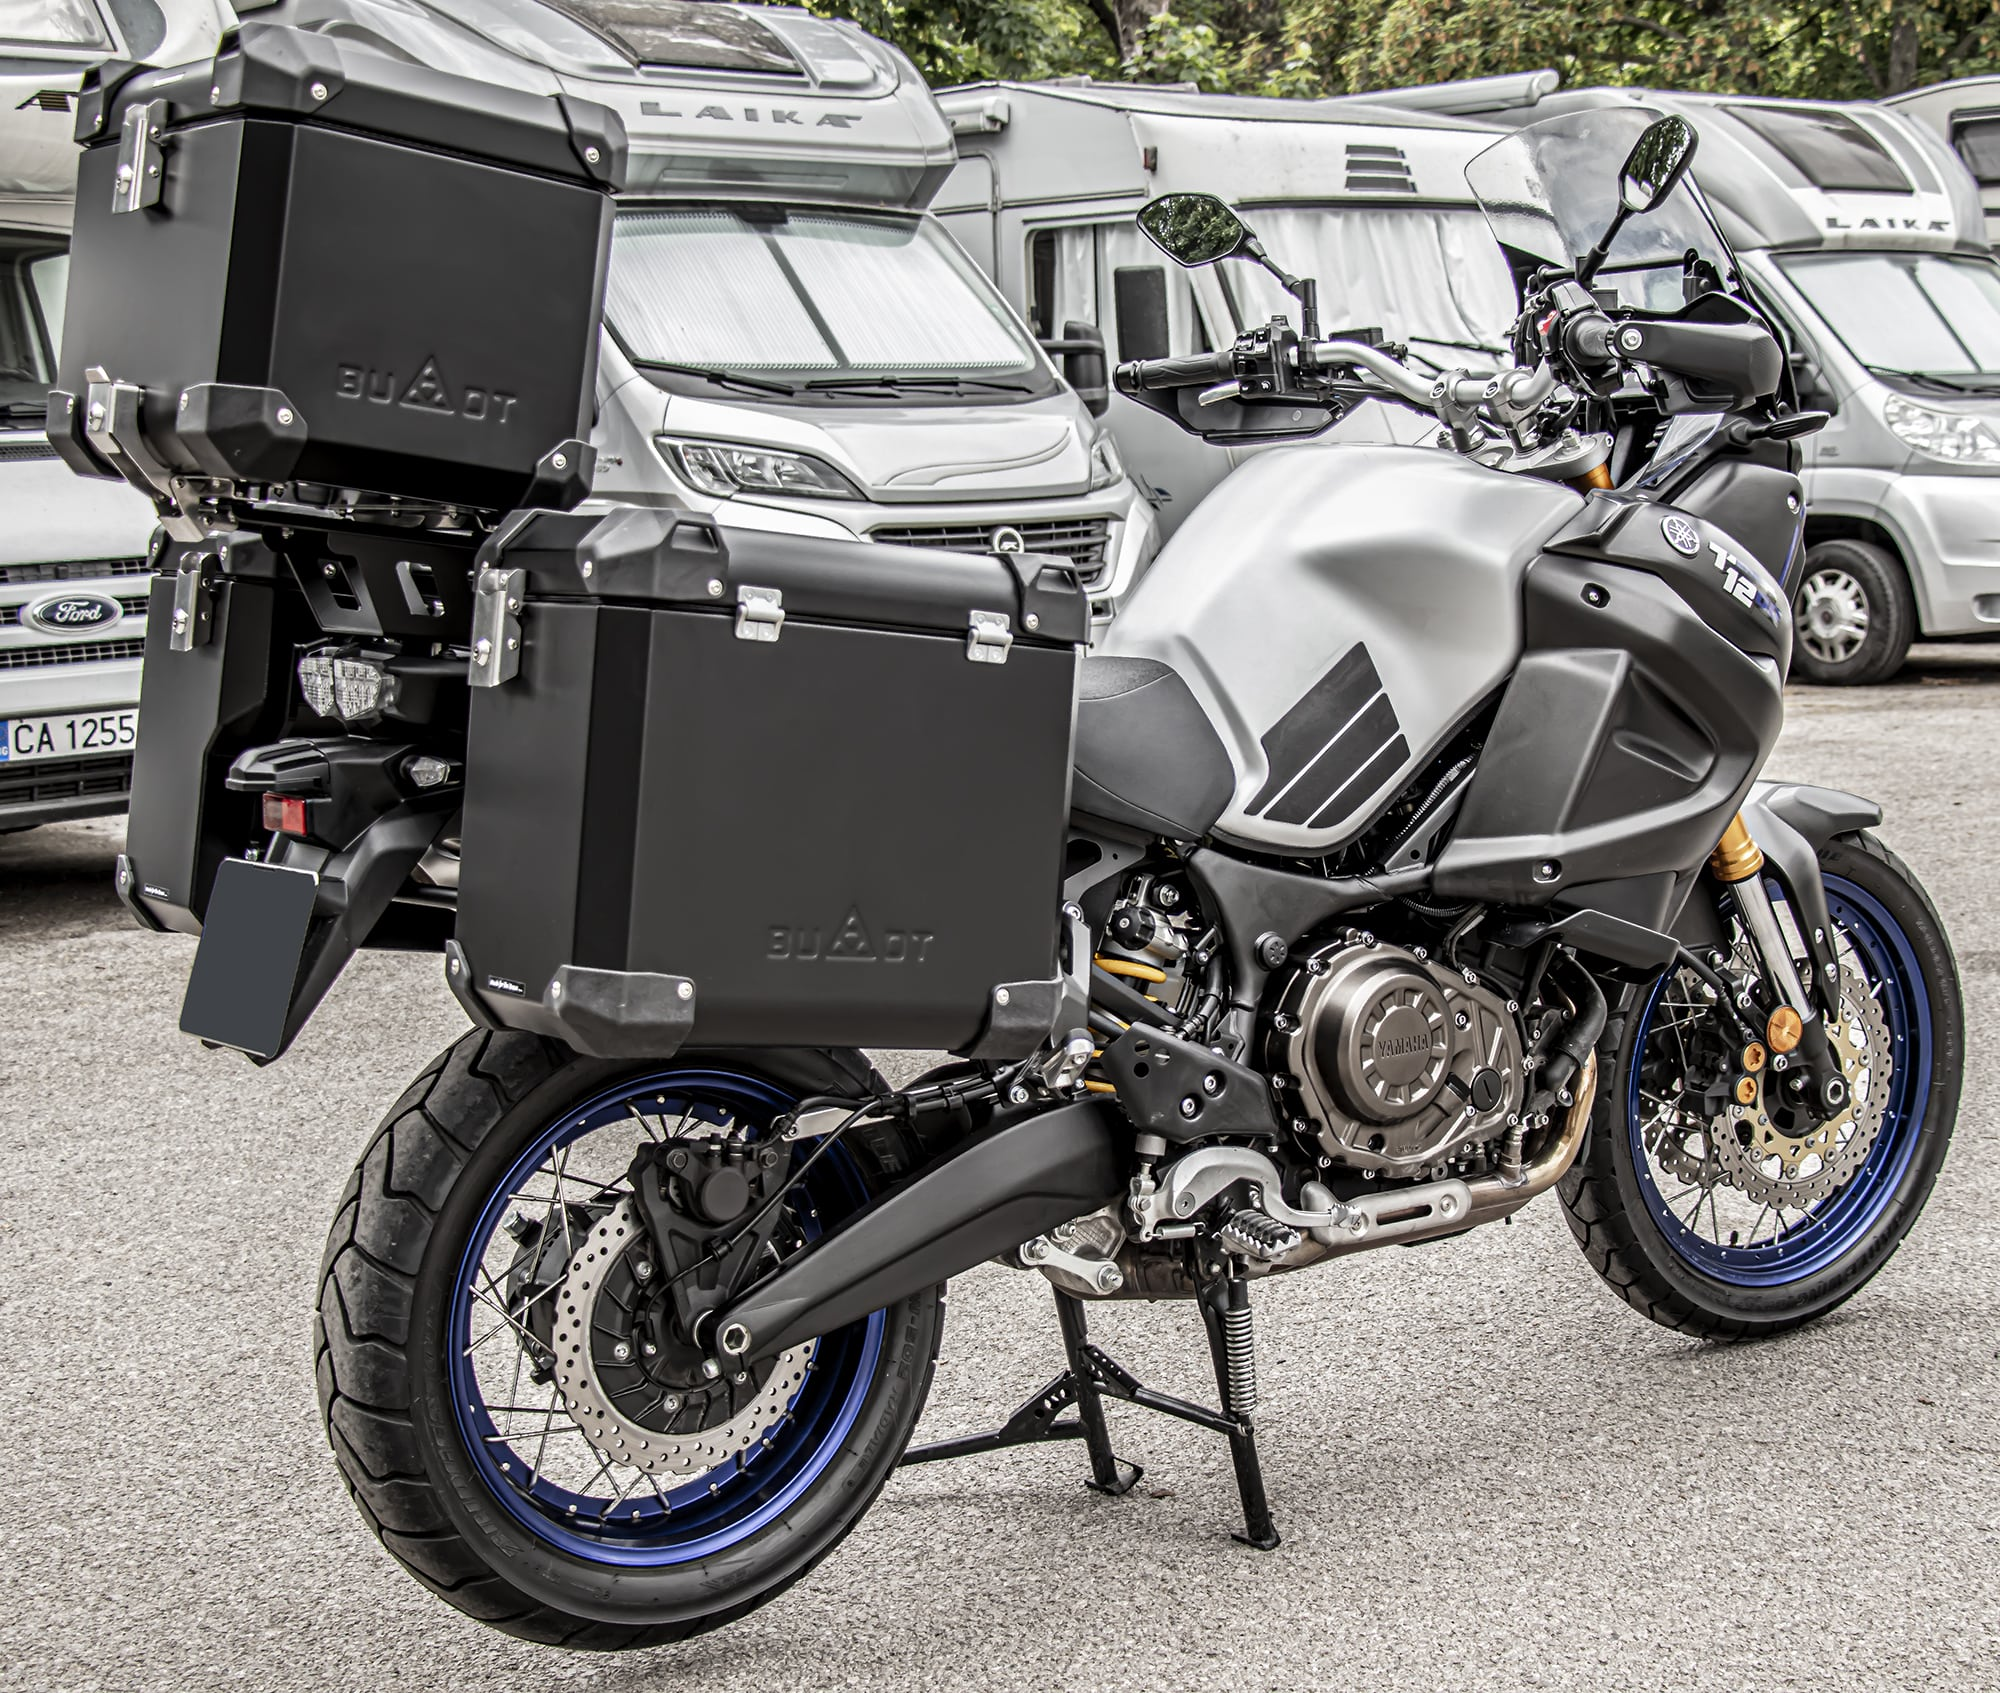 Defender EVO panniers systems